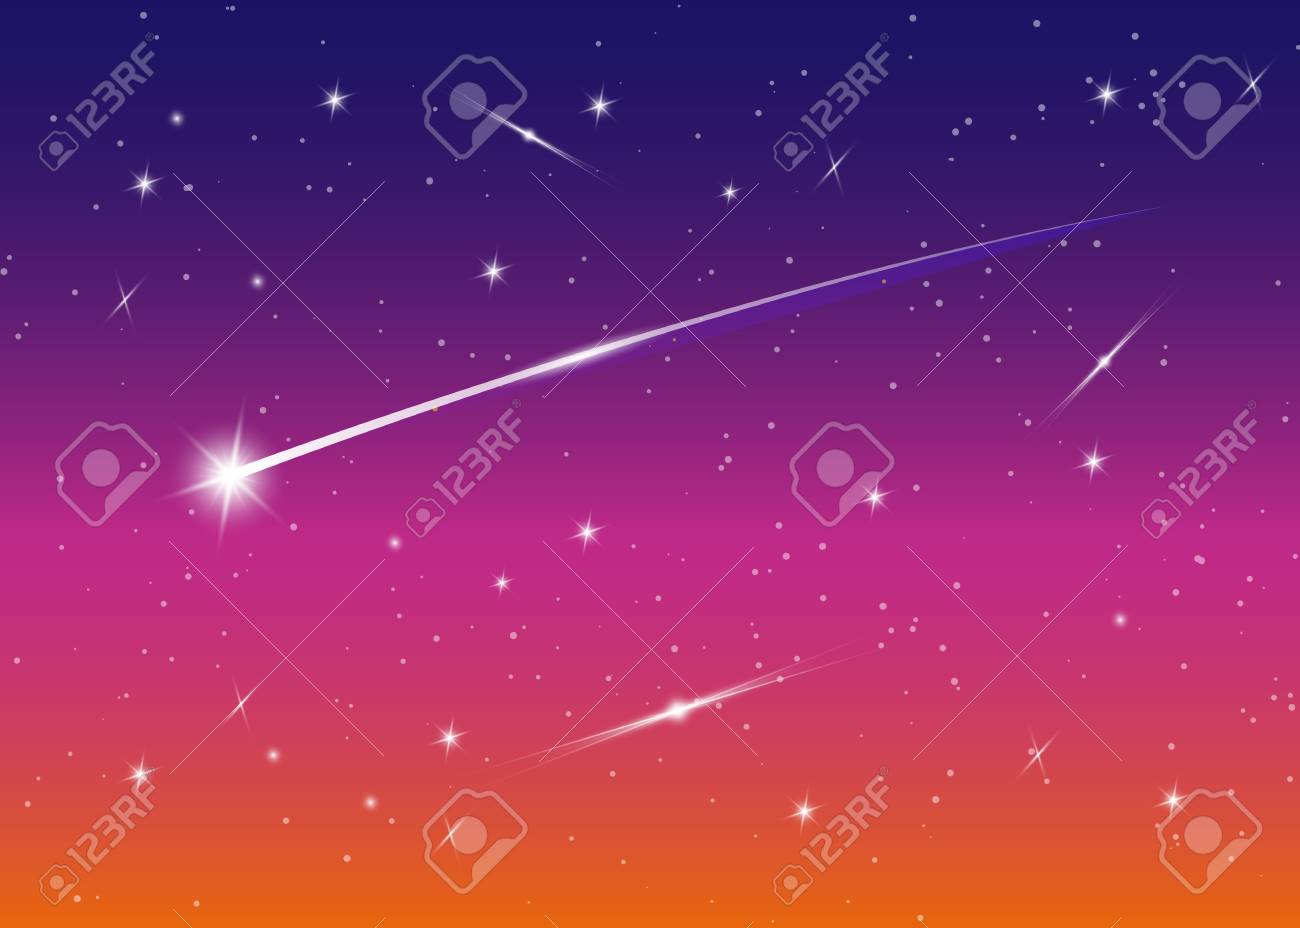 Shooting Star Background Against Dark Blue Starry Night Sky 1300x928